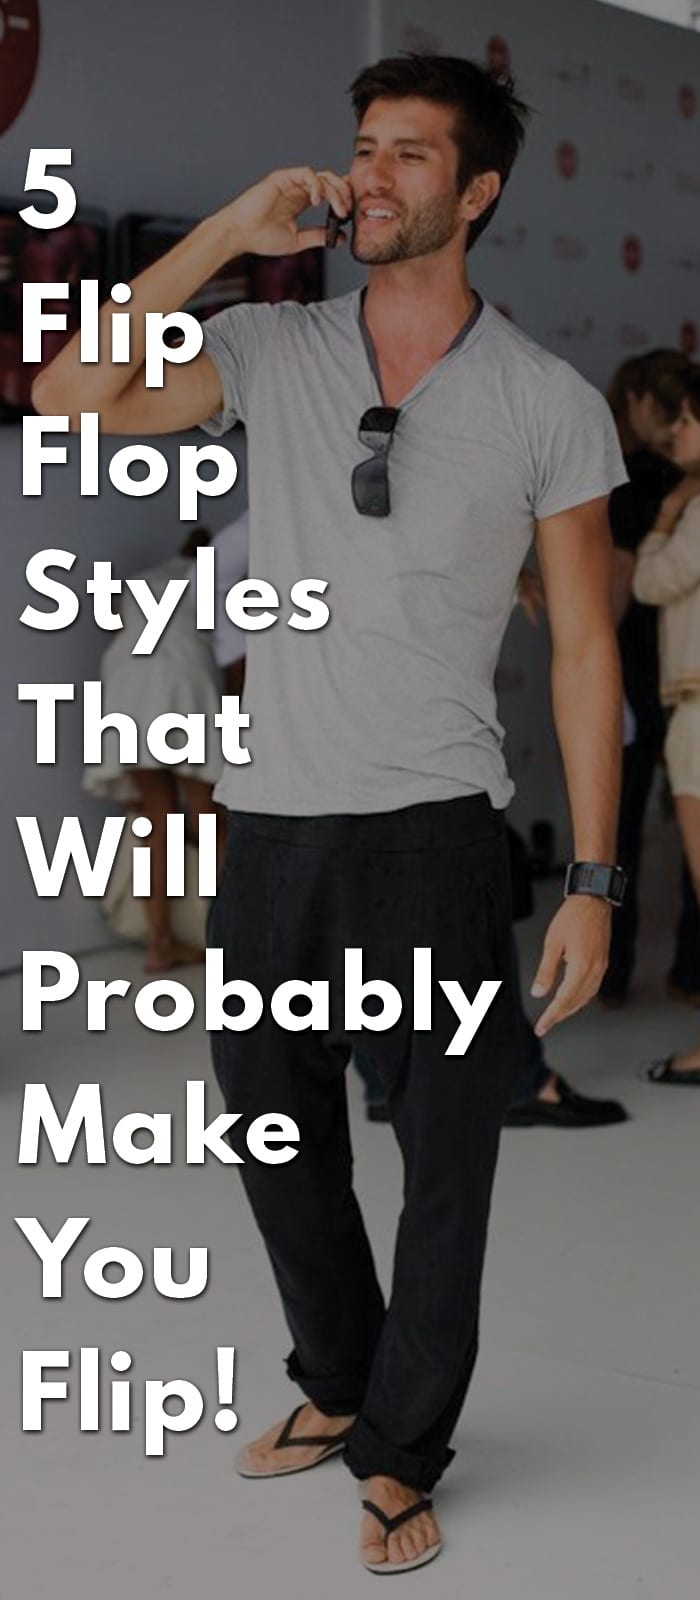 5-Flip-Flop-Styles-that-will-Probably-make-you-Flip!